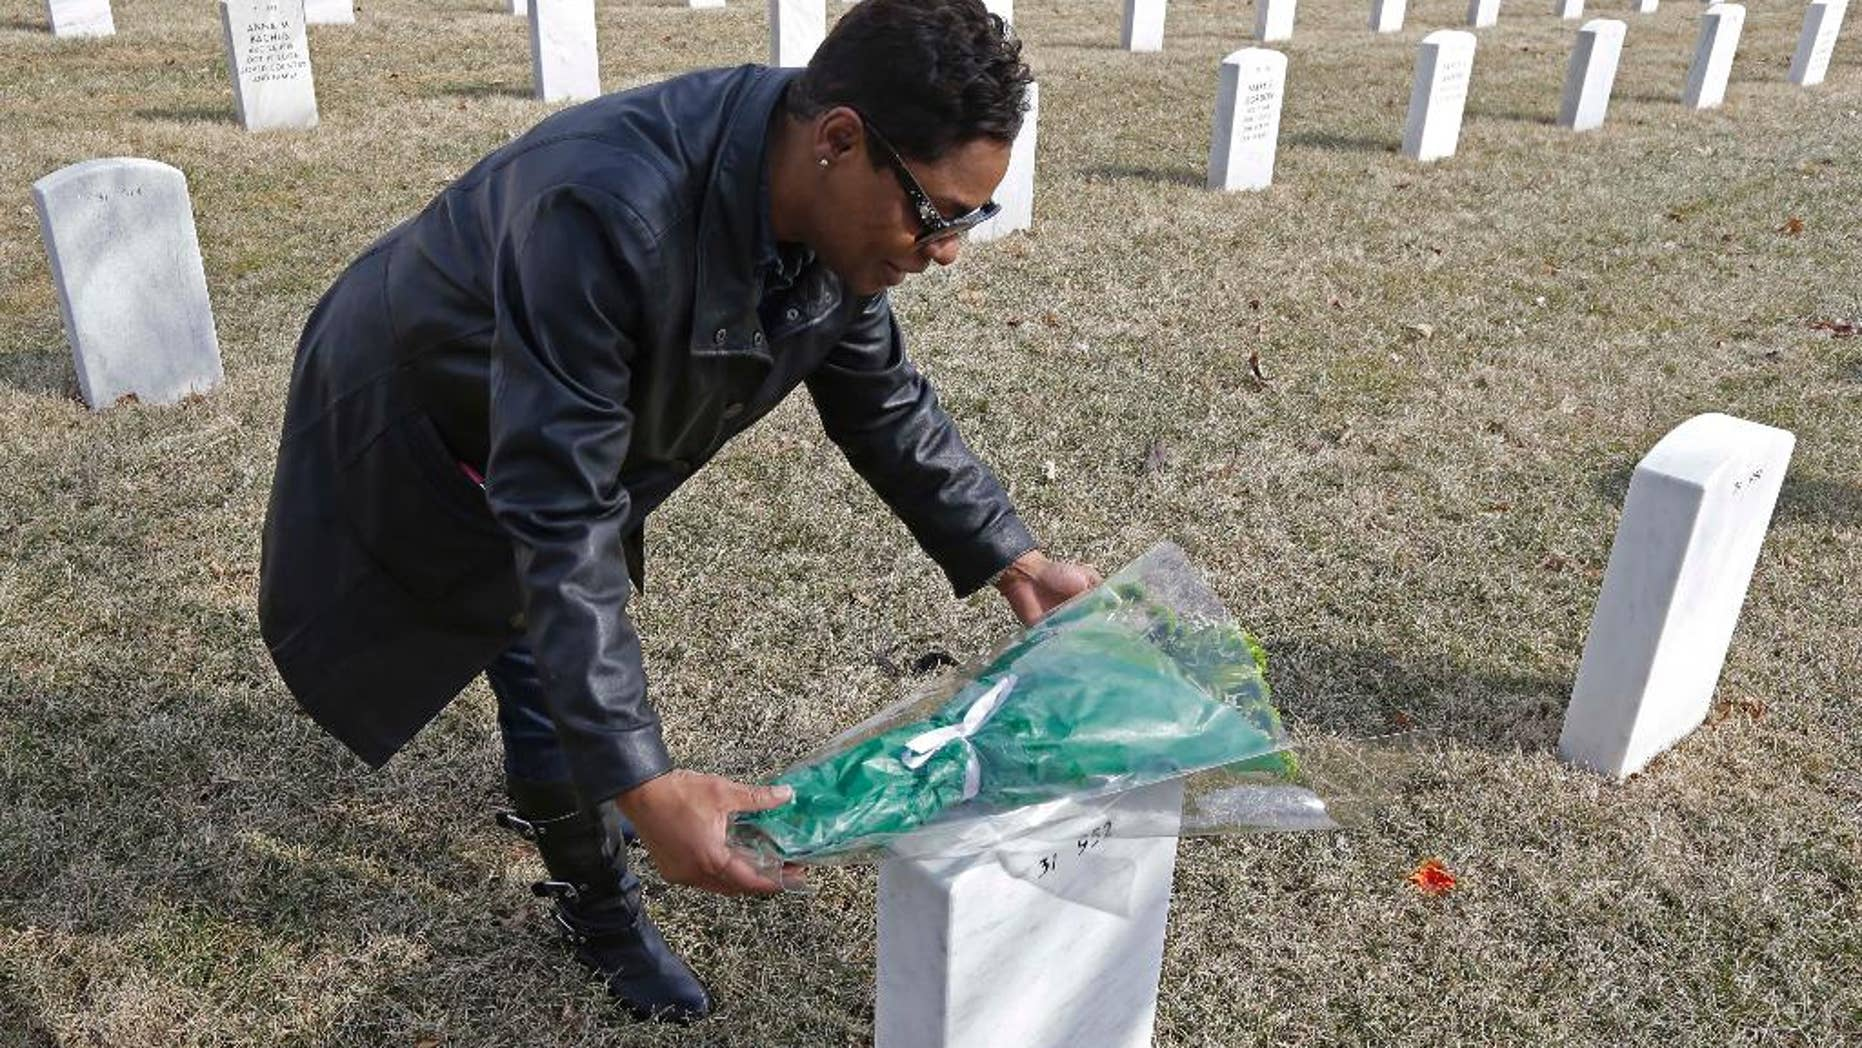 Dellaina Grundy places flowers on her father's headstone, Army veteran Leroy Metcalfe, Saturday, March 8, 2014, at the Dayton National Cemetery in Dayton, Ohio. Grundy isn't sure whether any or all of the cremated remains buried in the grave are his and knows that mystery will never be solved.(AP Photo/Al Behrman)